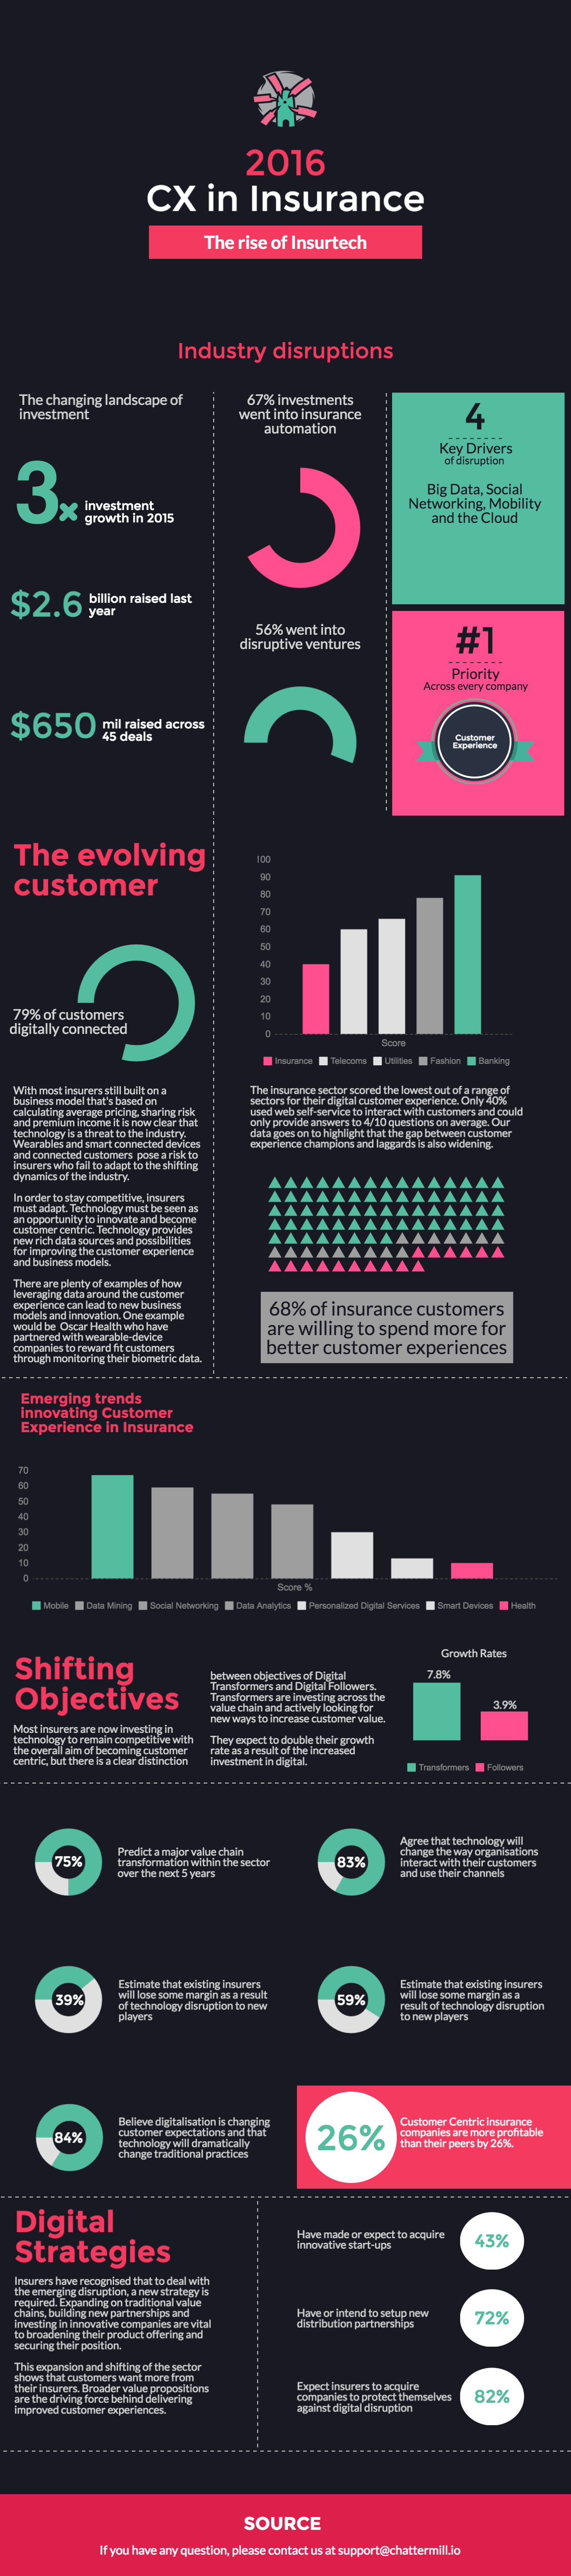 The State of Customer Experience in Insurance in 2016